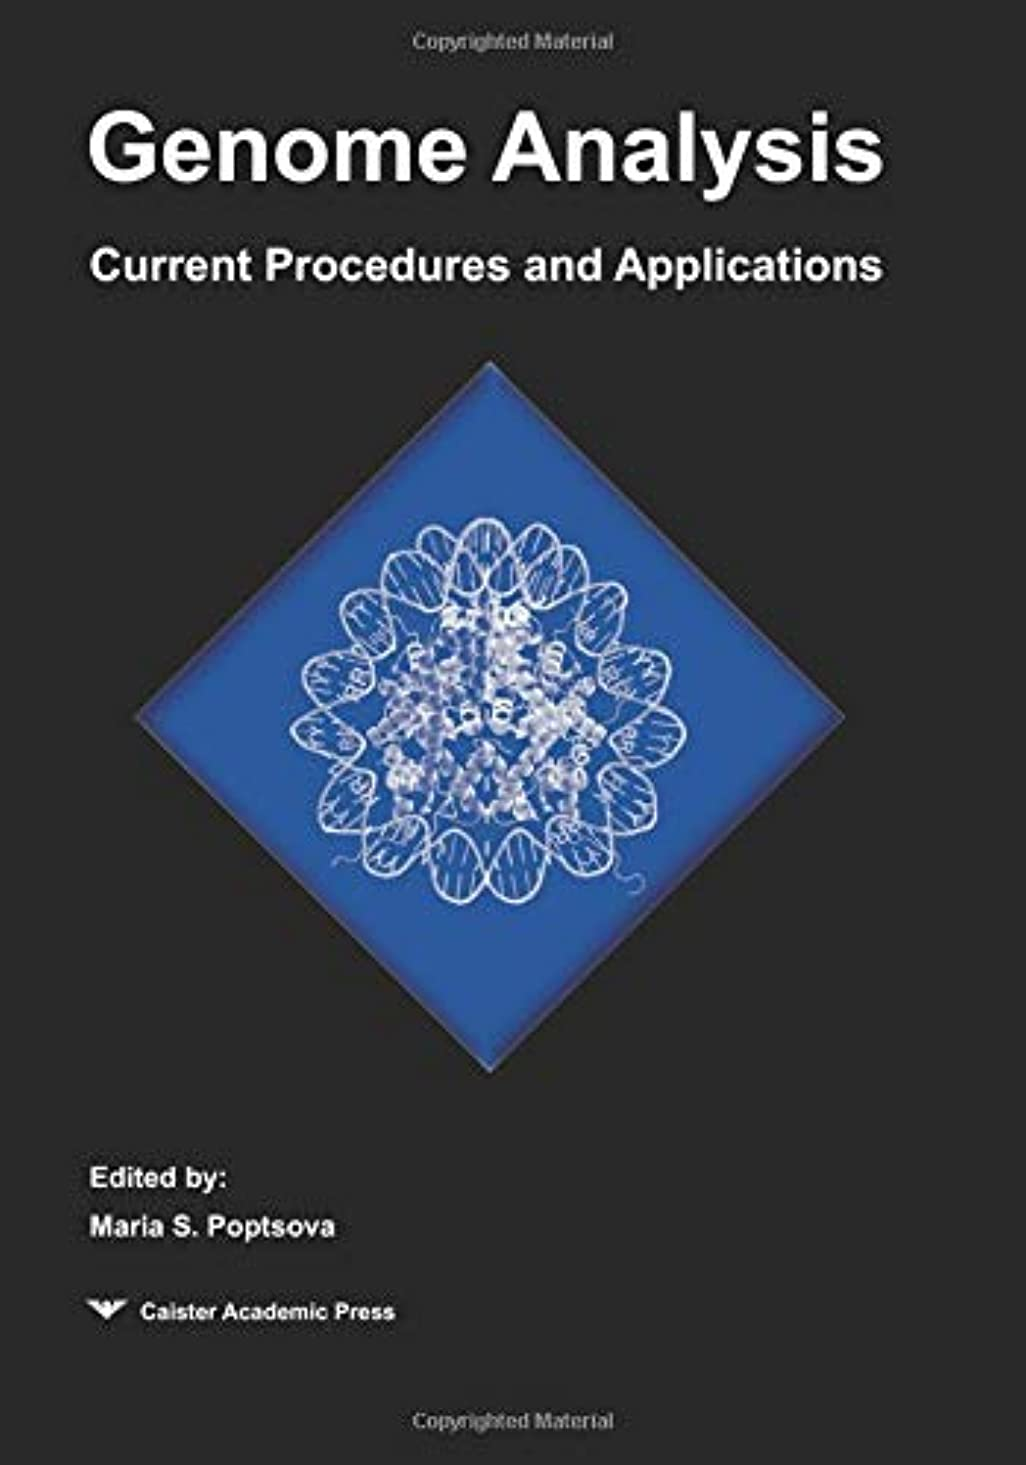 エミュレートする考古学的な注文Genome Analysis: Current Procedures and Applications